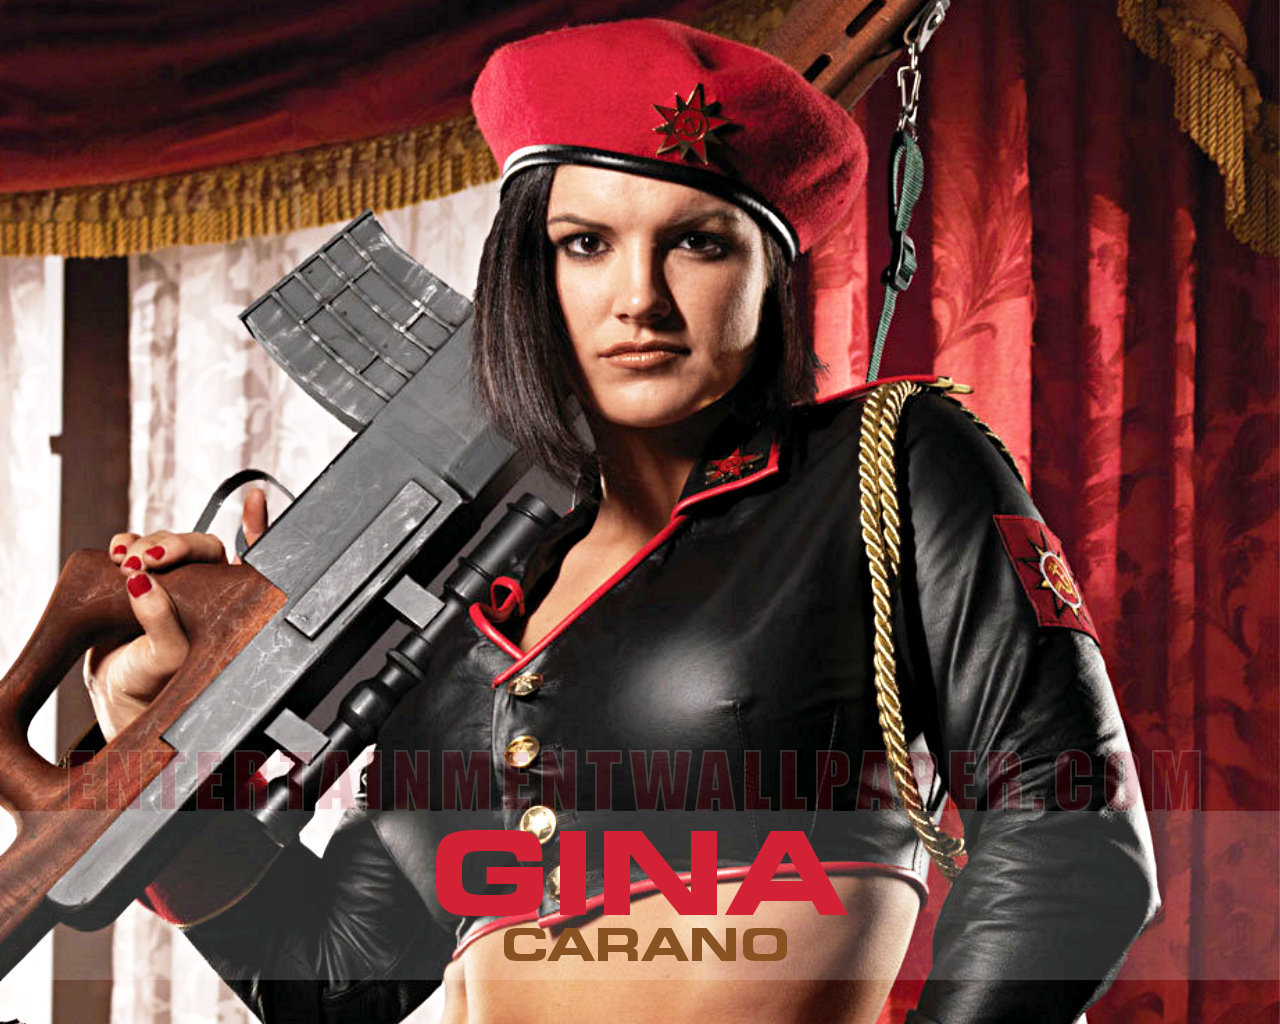 Gina Carano Desktop Wallpaper - WallpaperSafari